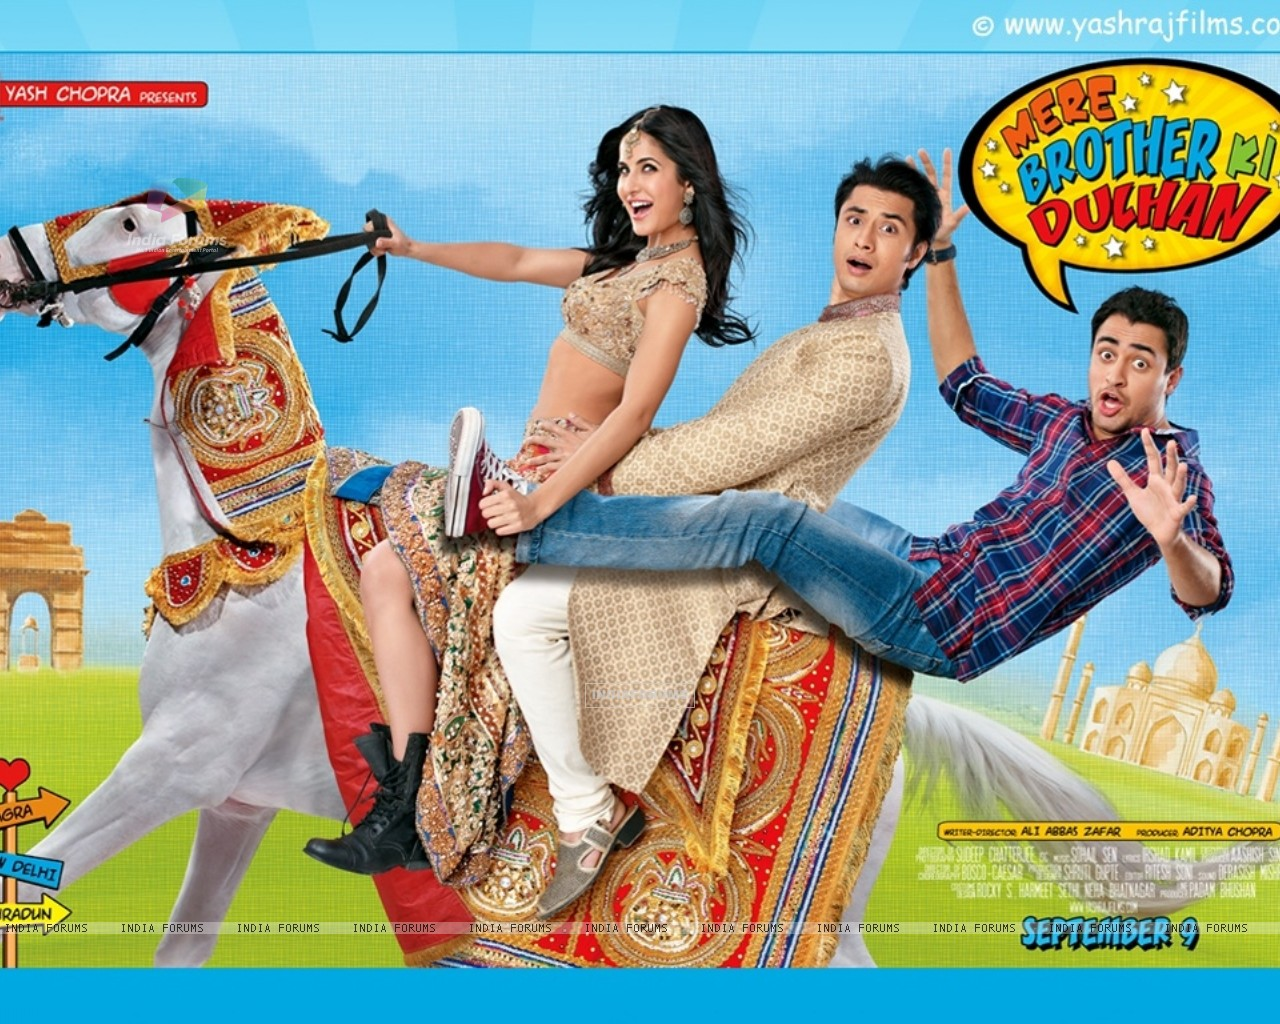 Poster of Mere Brother Ki Dulhan movie (151773) size:1280x1024